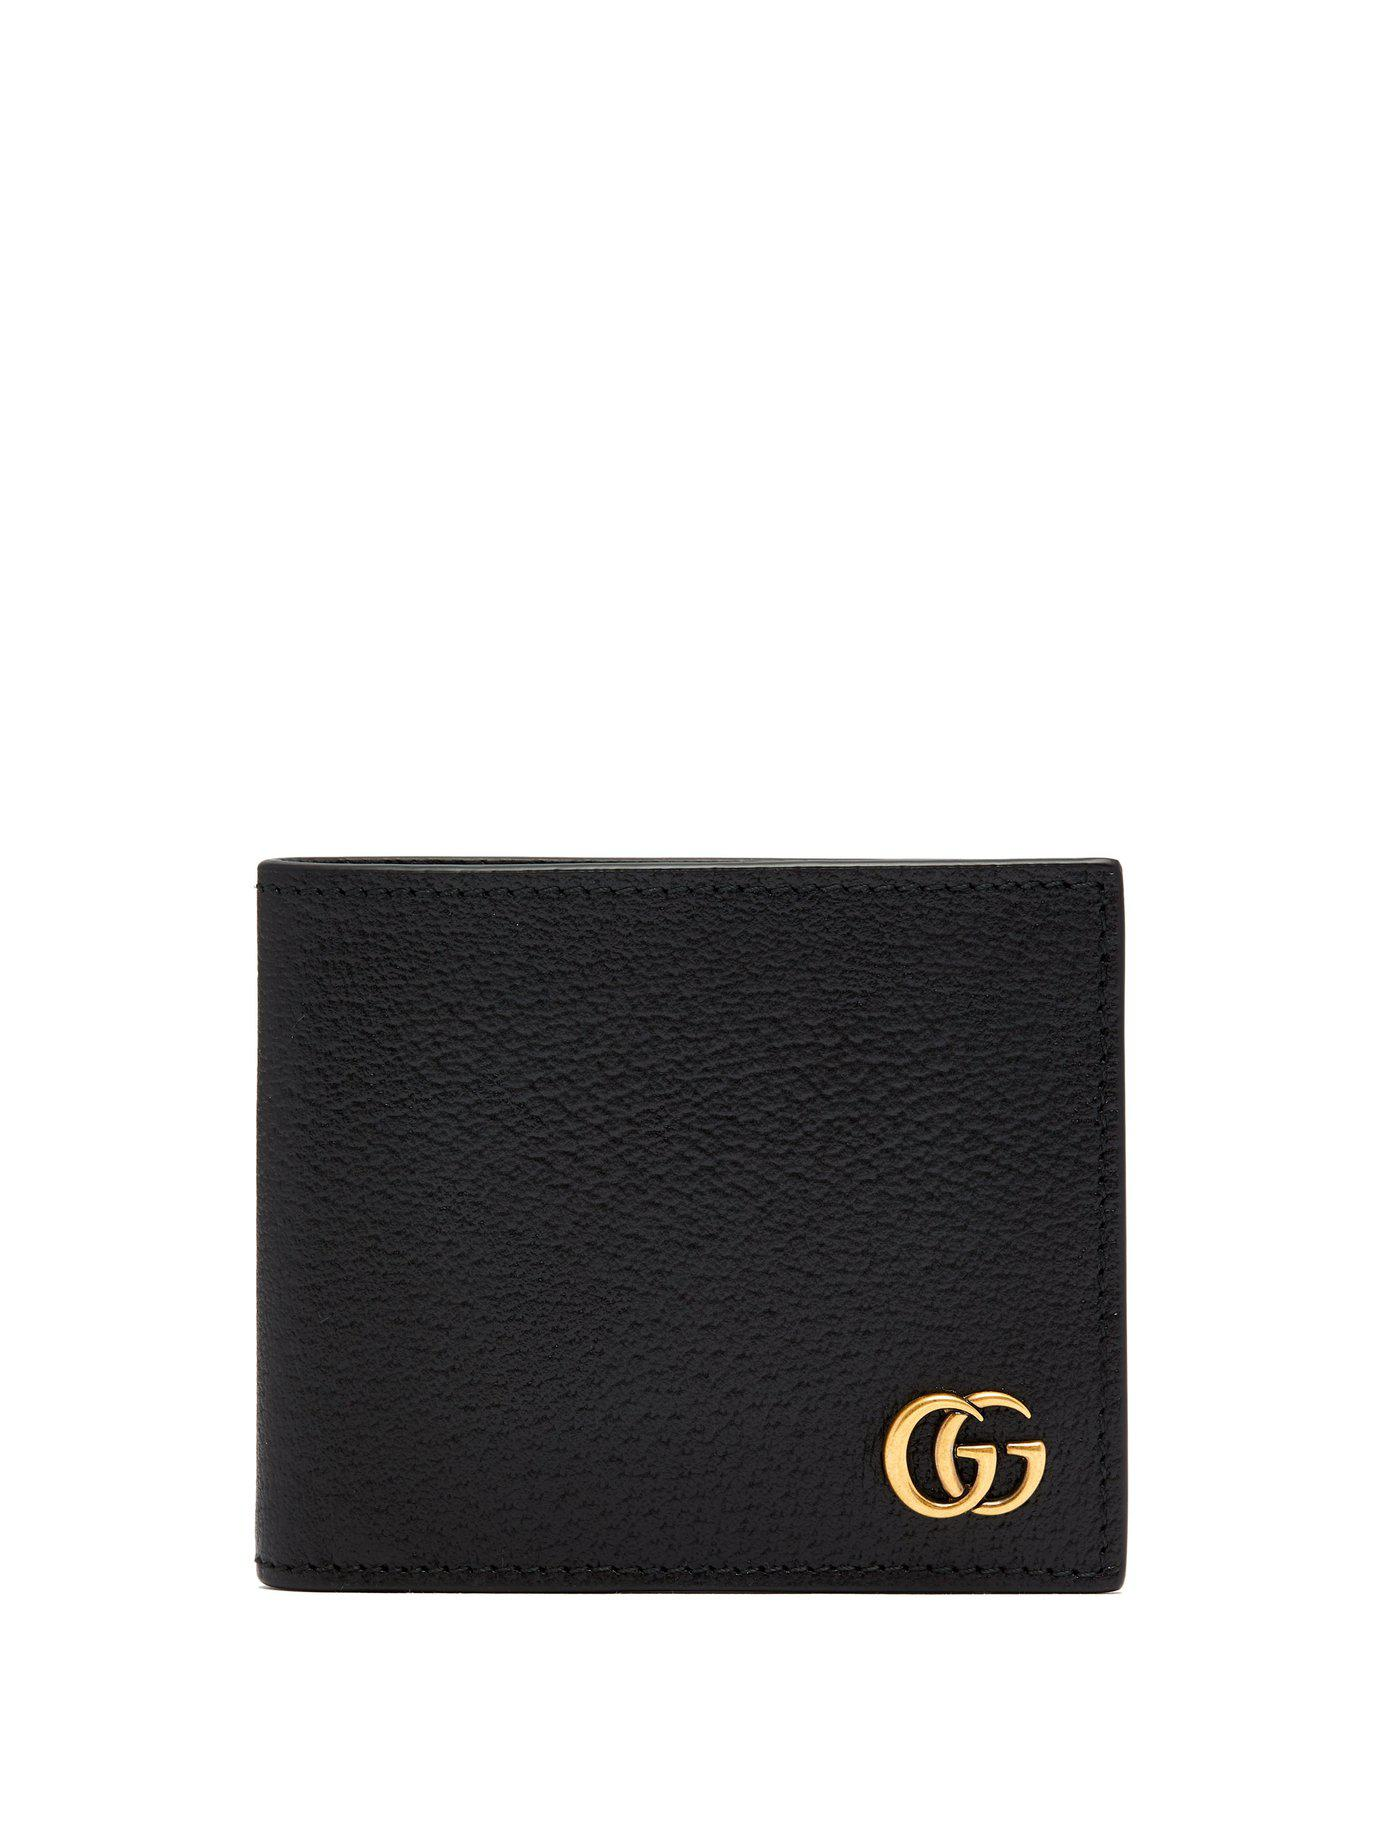 bfe28661c10e Gucci Gg Marmont Grained Leather Bi Fold Wallet in Black for Men ...